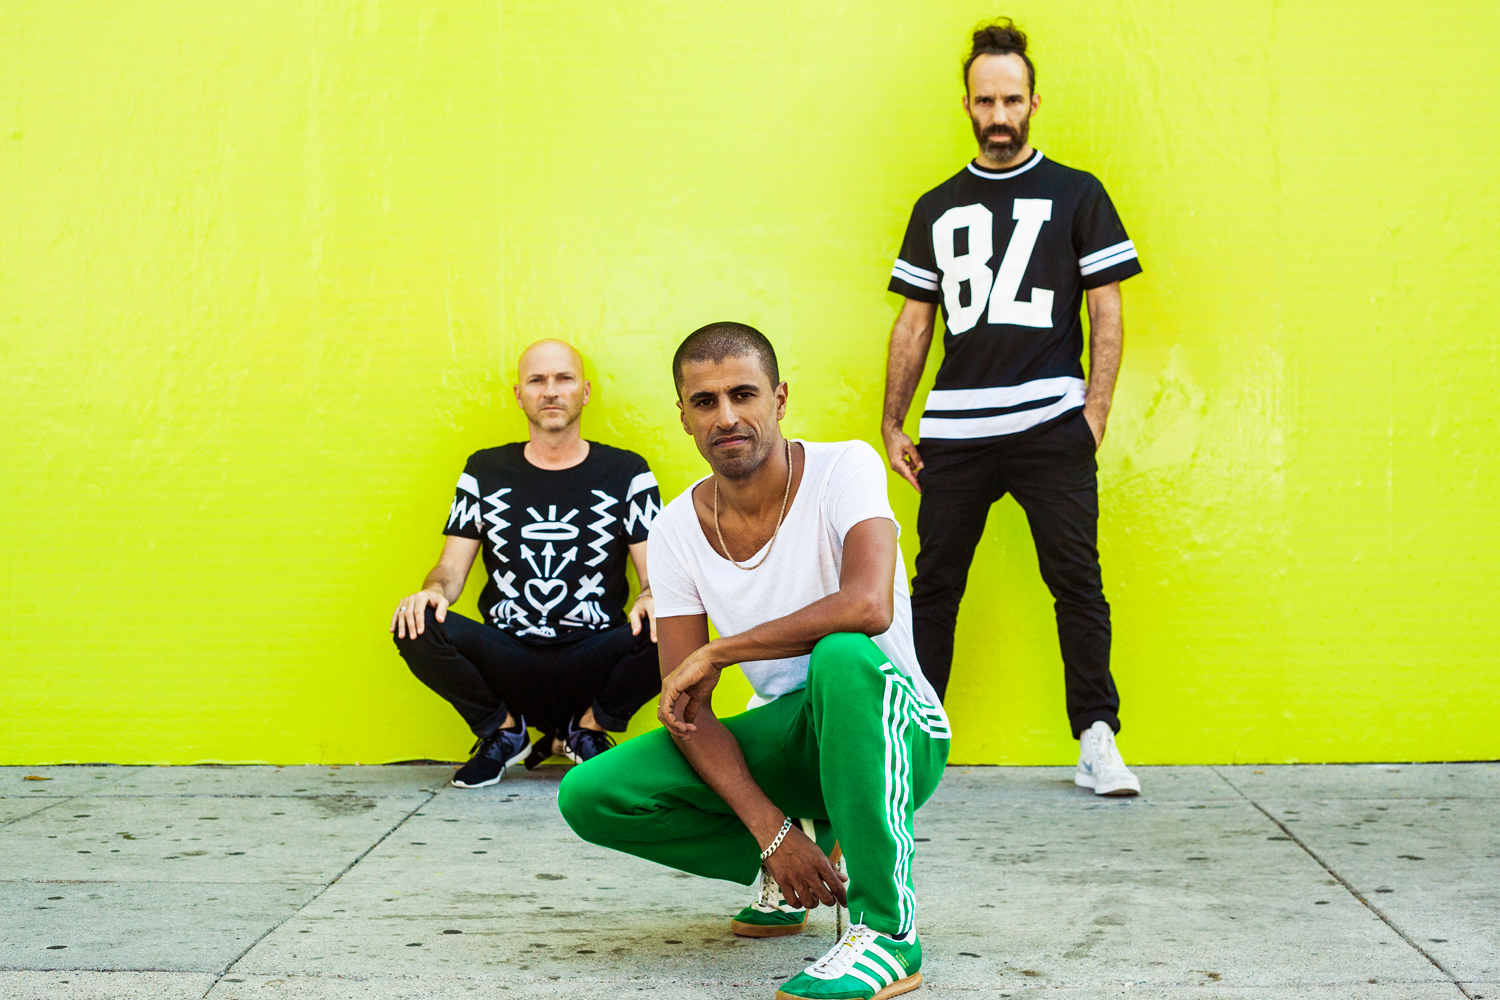 Balkan Beat Box| via http://www.balkanbeatbox.com/photo